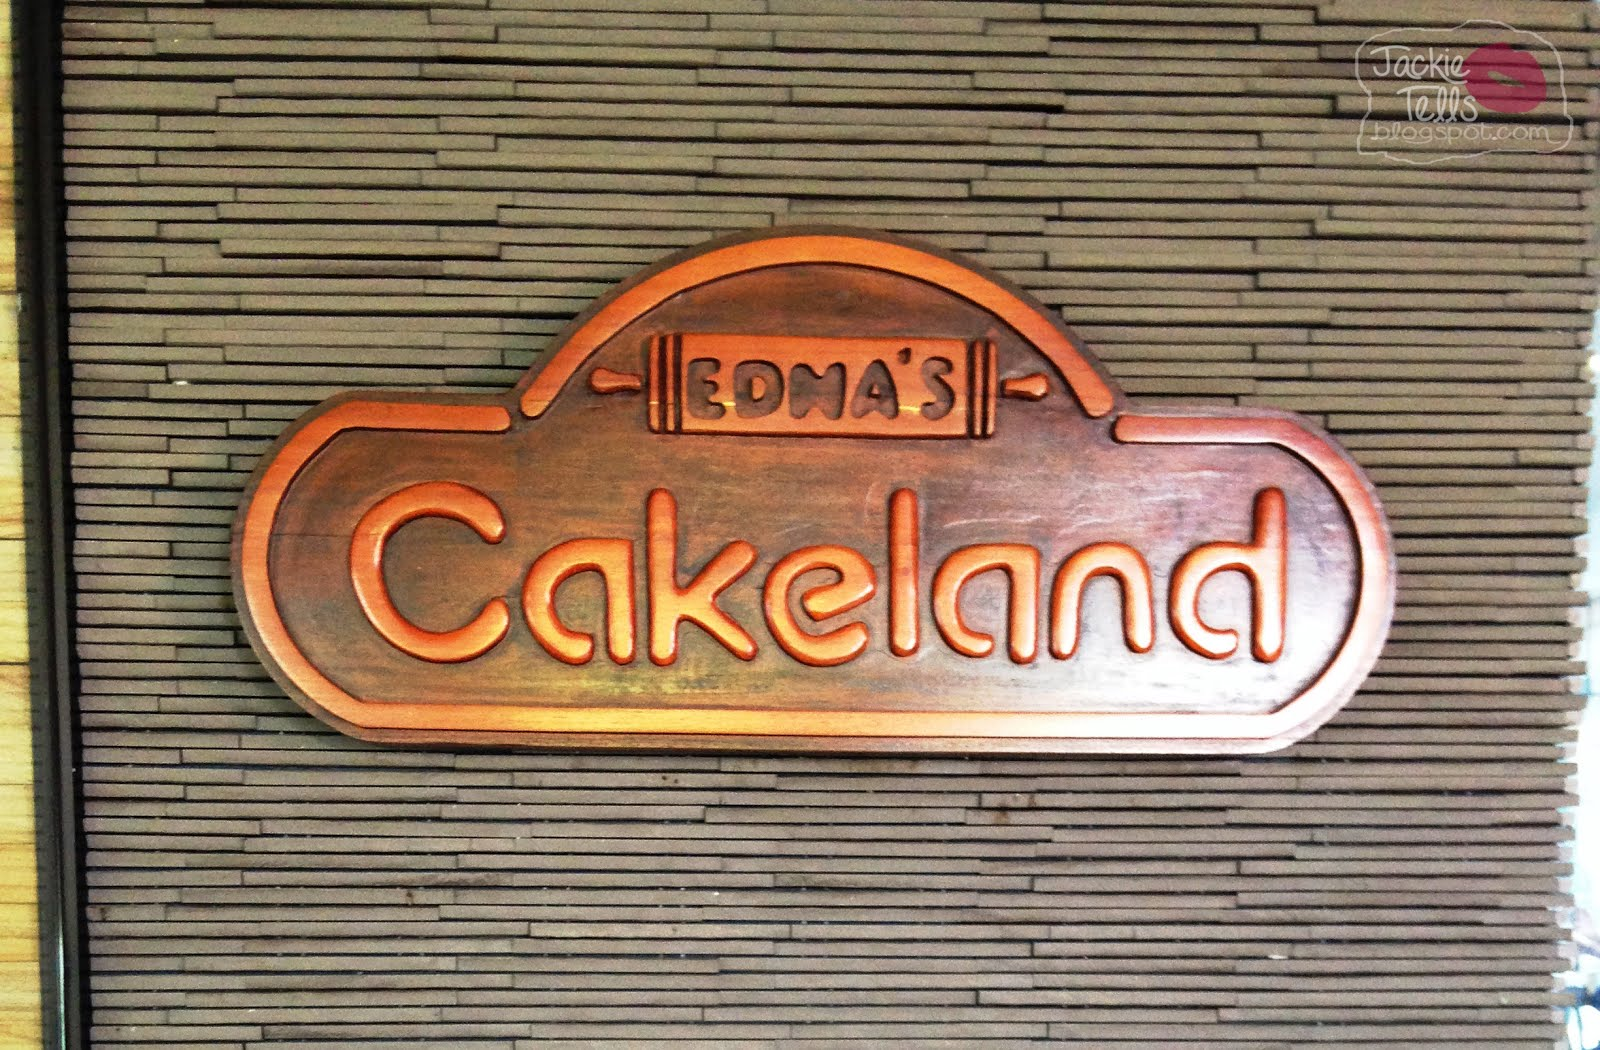 JACKIEATS Breakfast at Ednas CAKELAND Cabanatuan City What